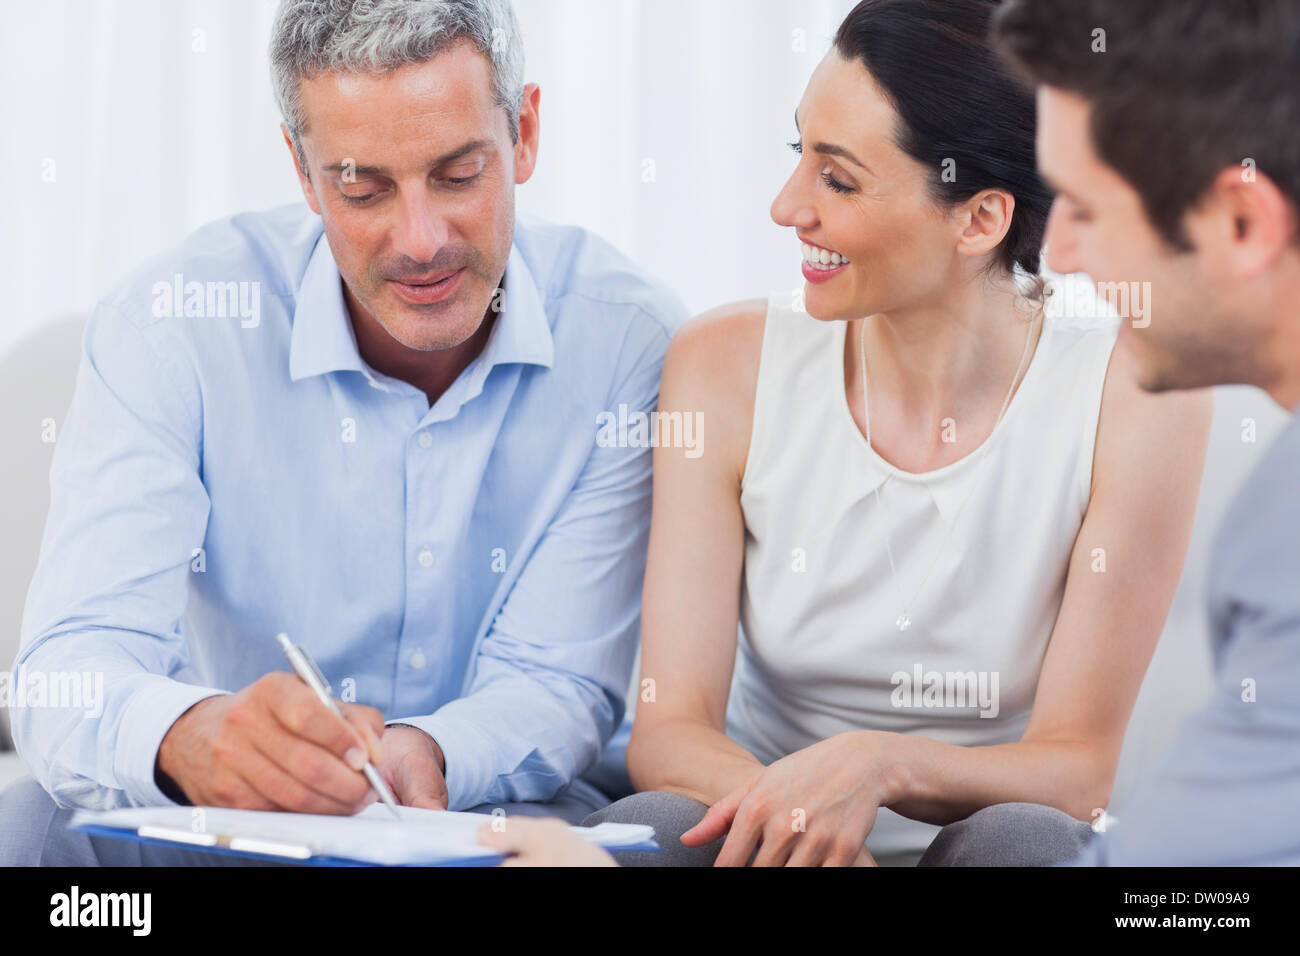 Client signing a contract with wife - Stock Image